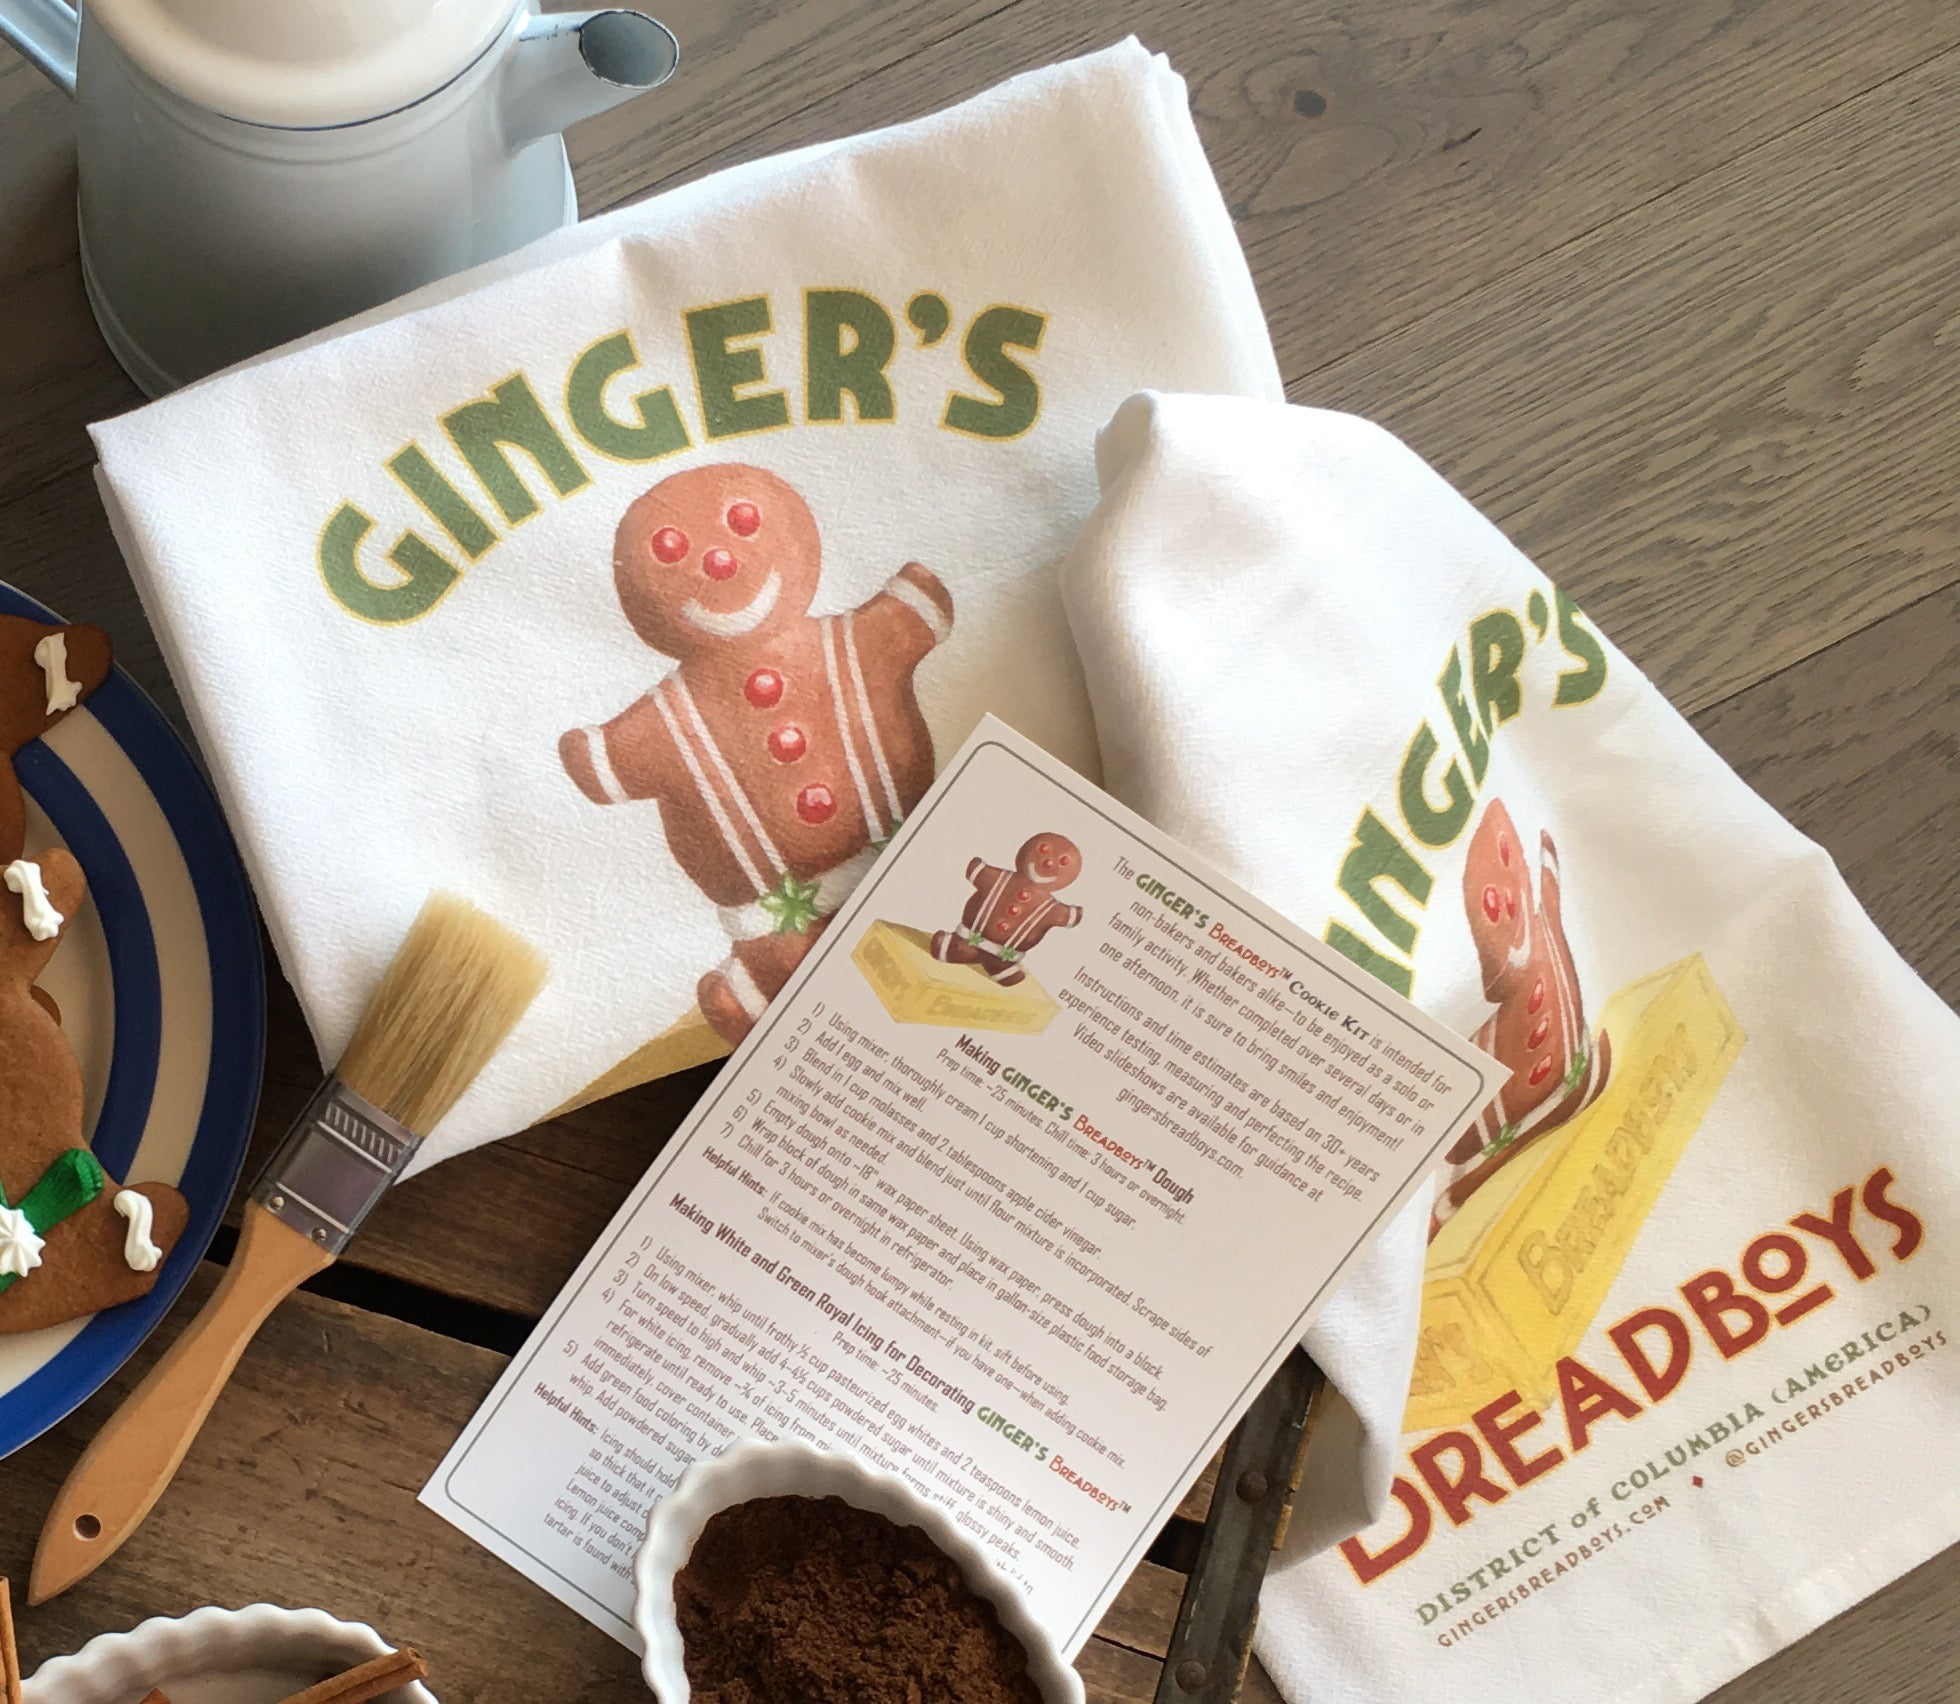 Ginger's Breadboys branded flour sack kitchen tea towels